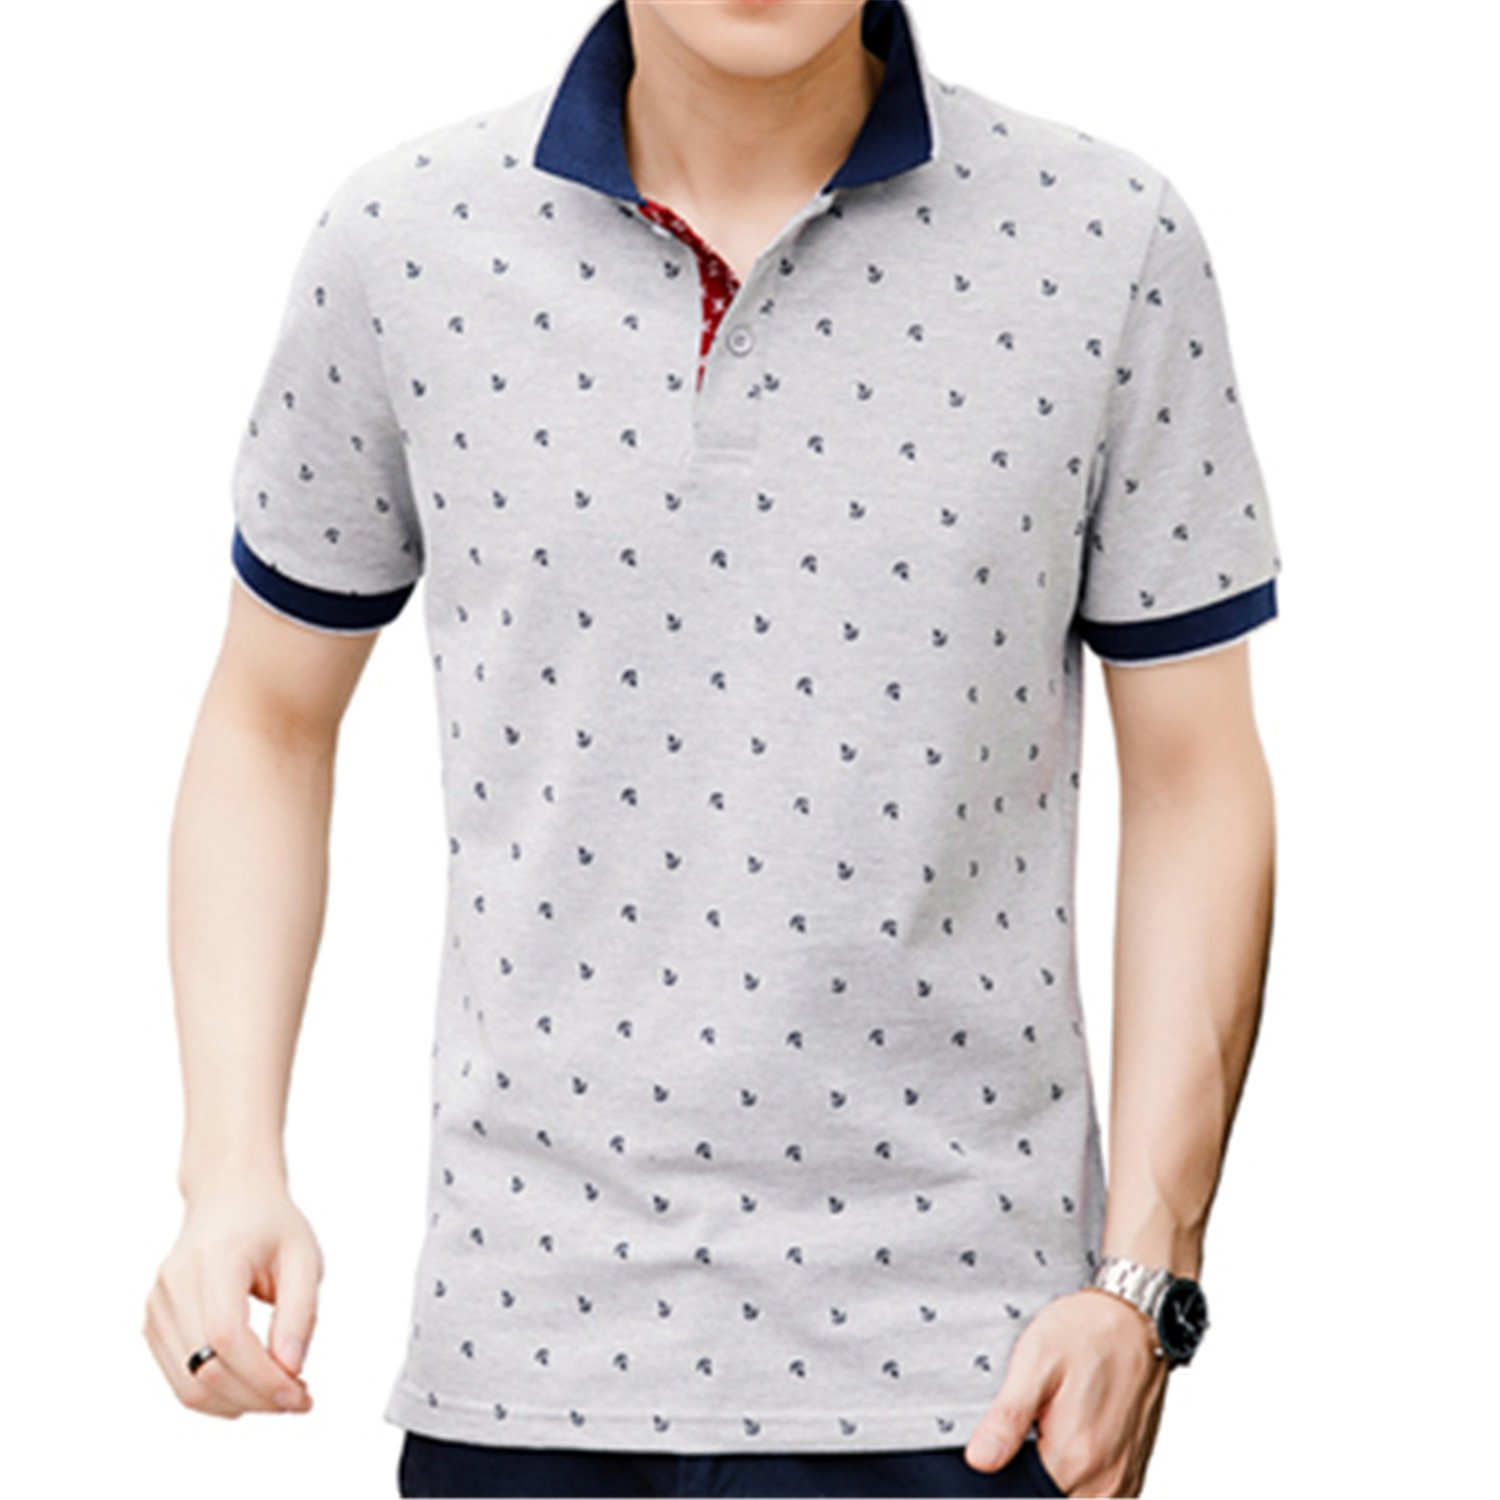 Gomis Shirt Men Summer Cotton Printed Polo Shirts Brands Short Sleeve Polo Collar Male Polo Shirts 3XL